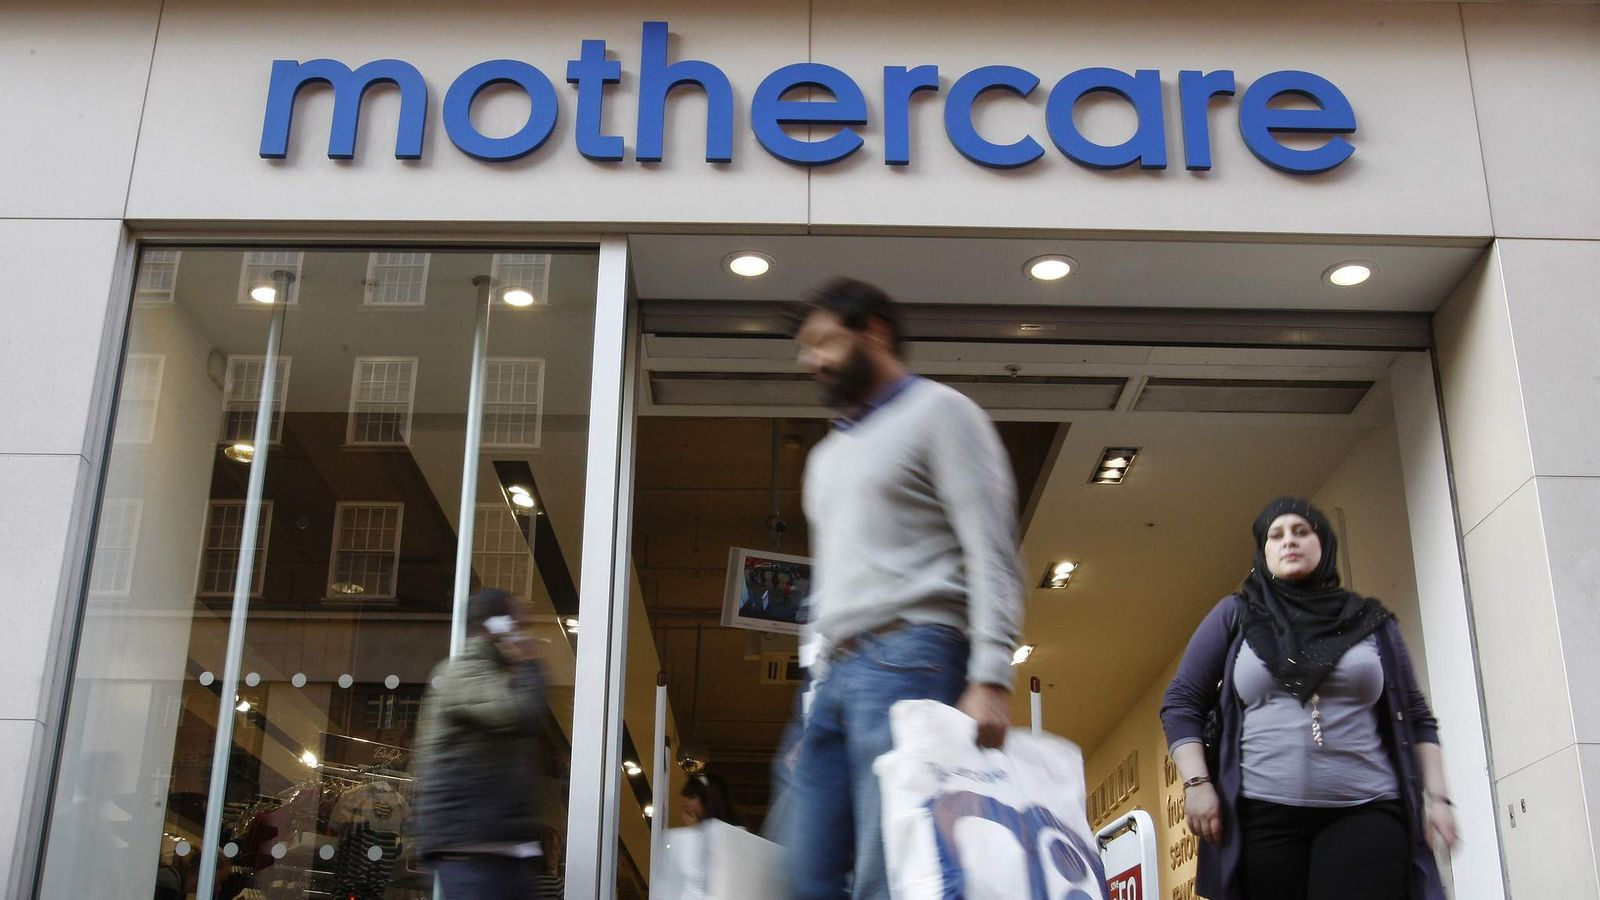 Mothercare UK nears collapse with 2,500 jobs at risk 1